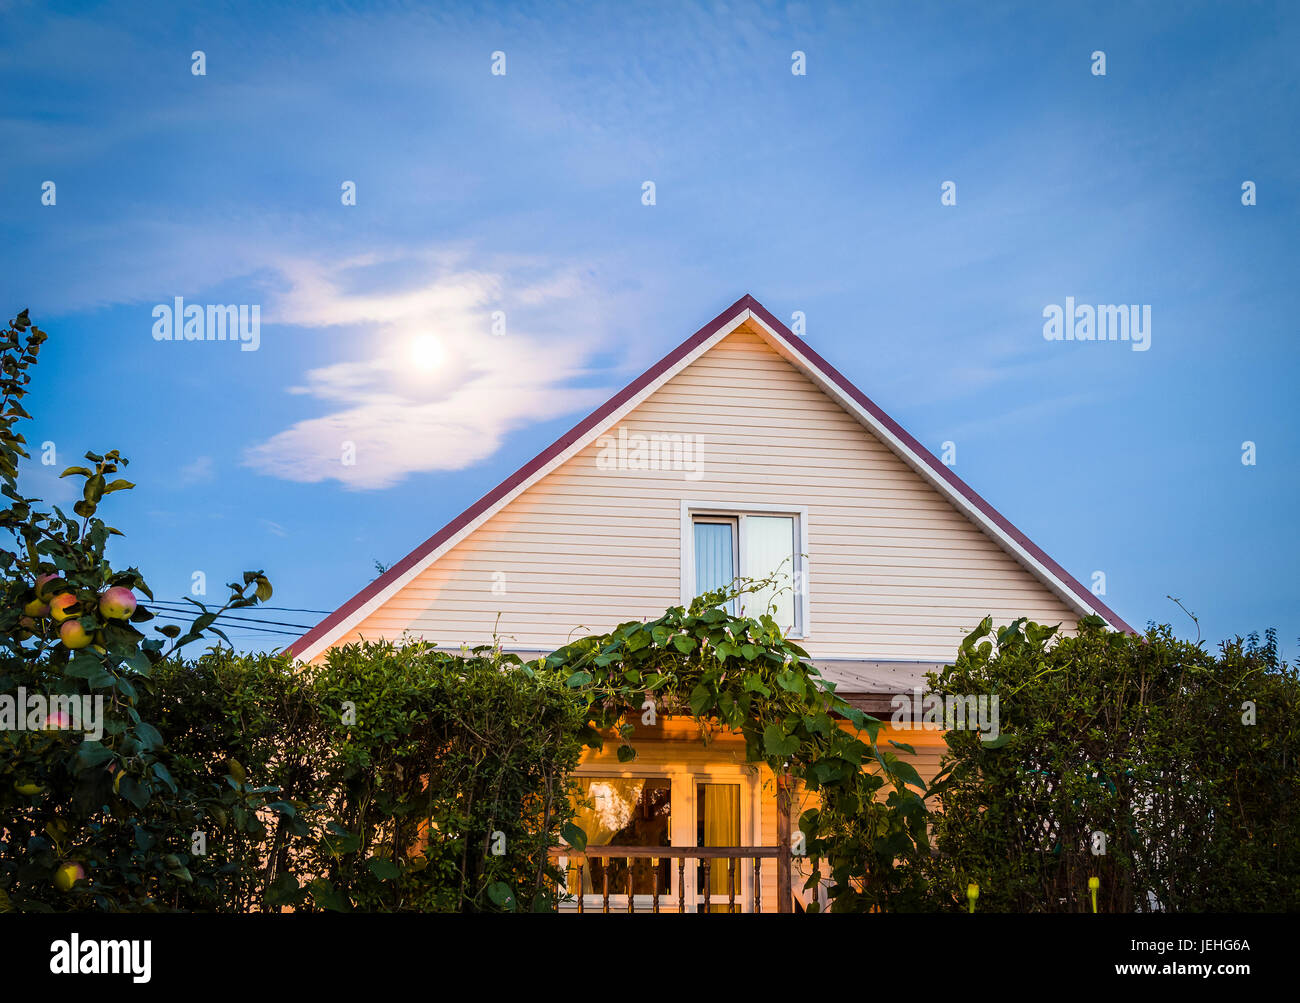 Skate house on background of the moon. - Stock Image